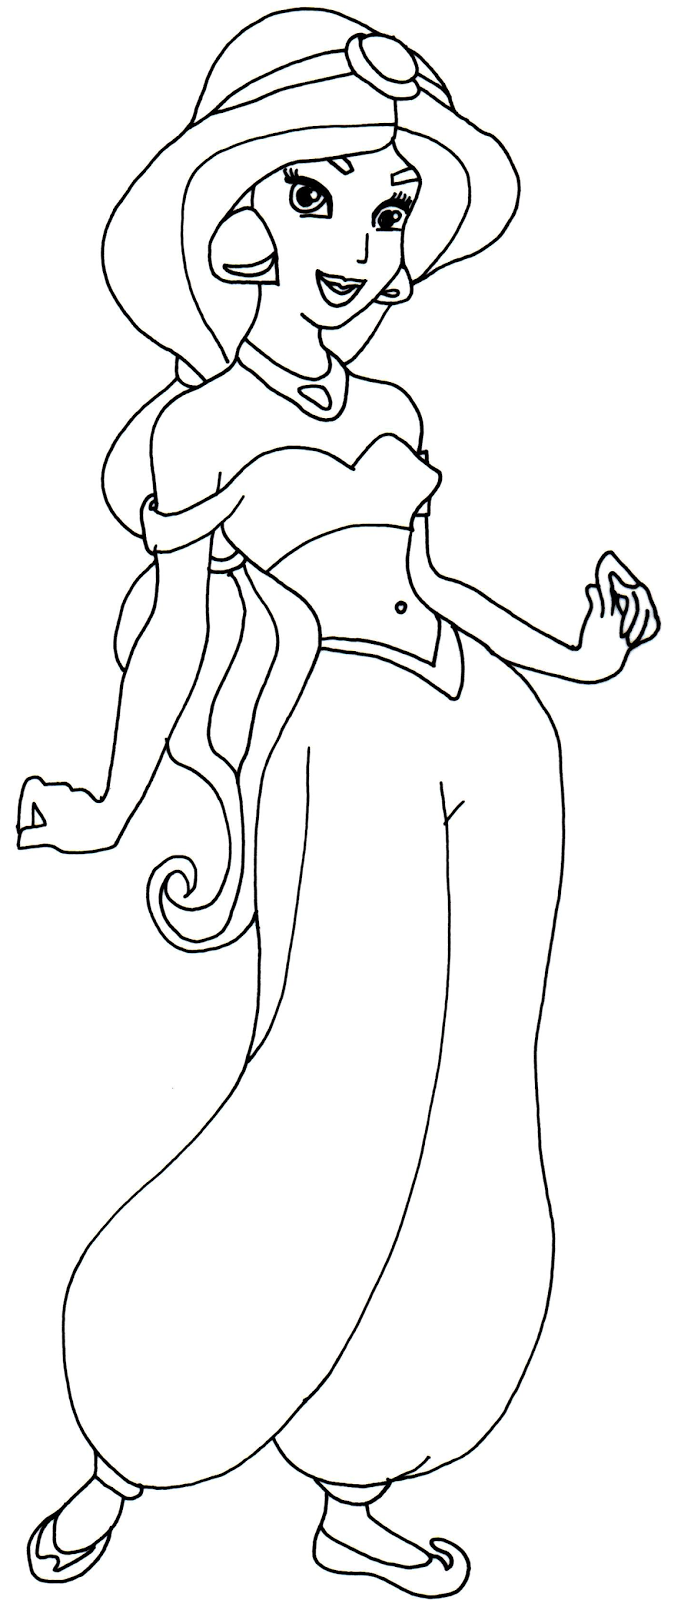 jasmine coloring pages to print - photo#12